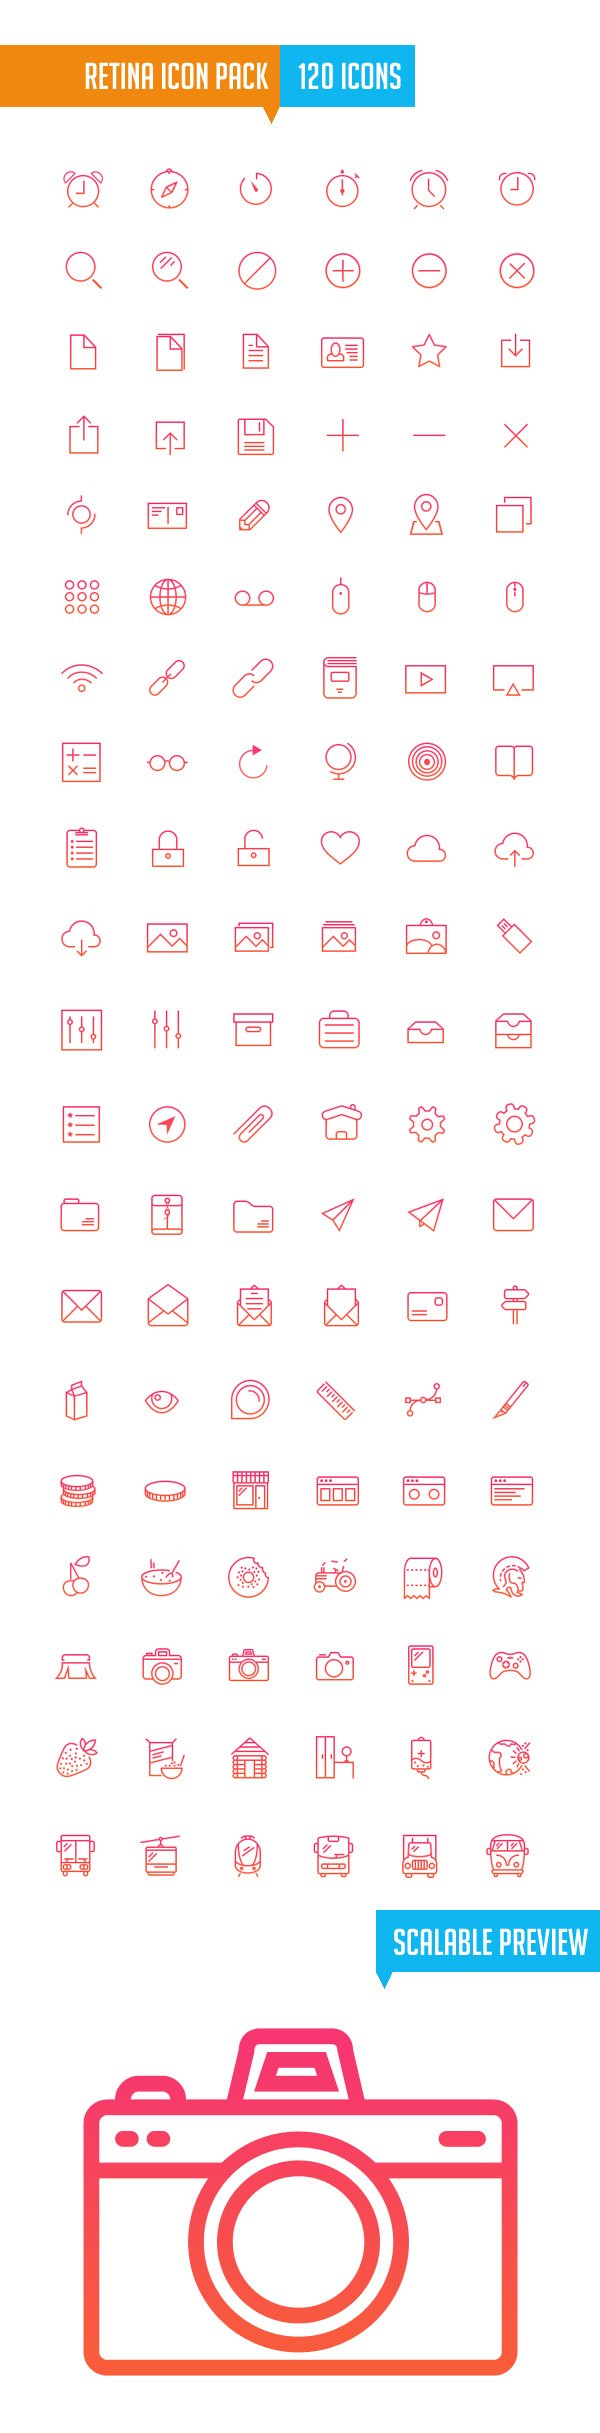 Retina Icon Pack (120 Icons)